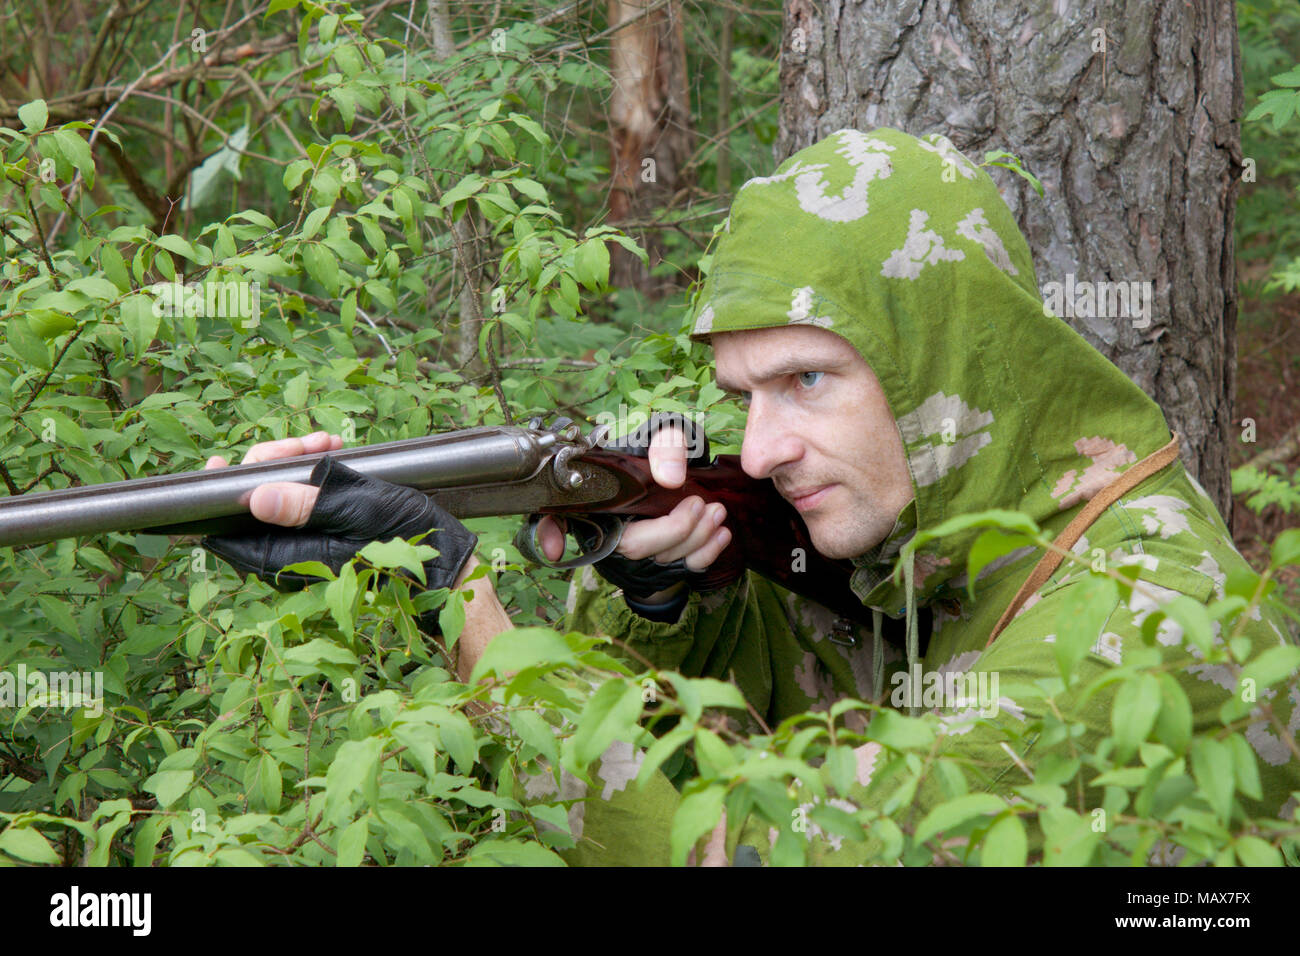 The shooter in camouflage with an old trigger gun Stock Photo